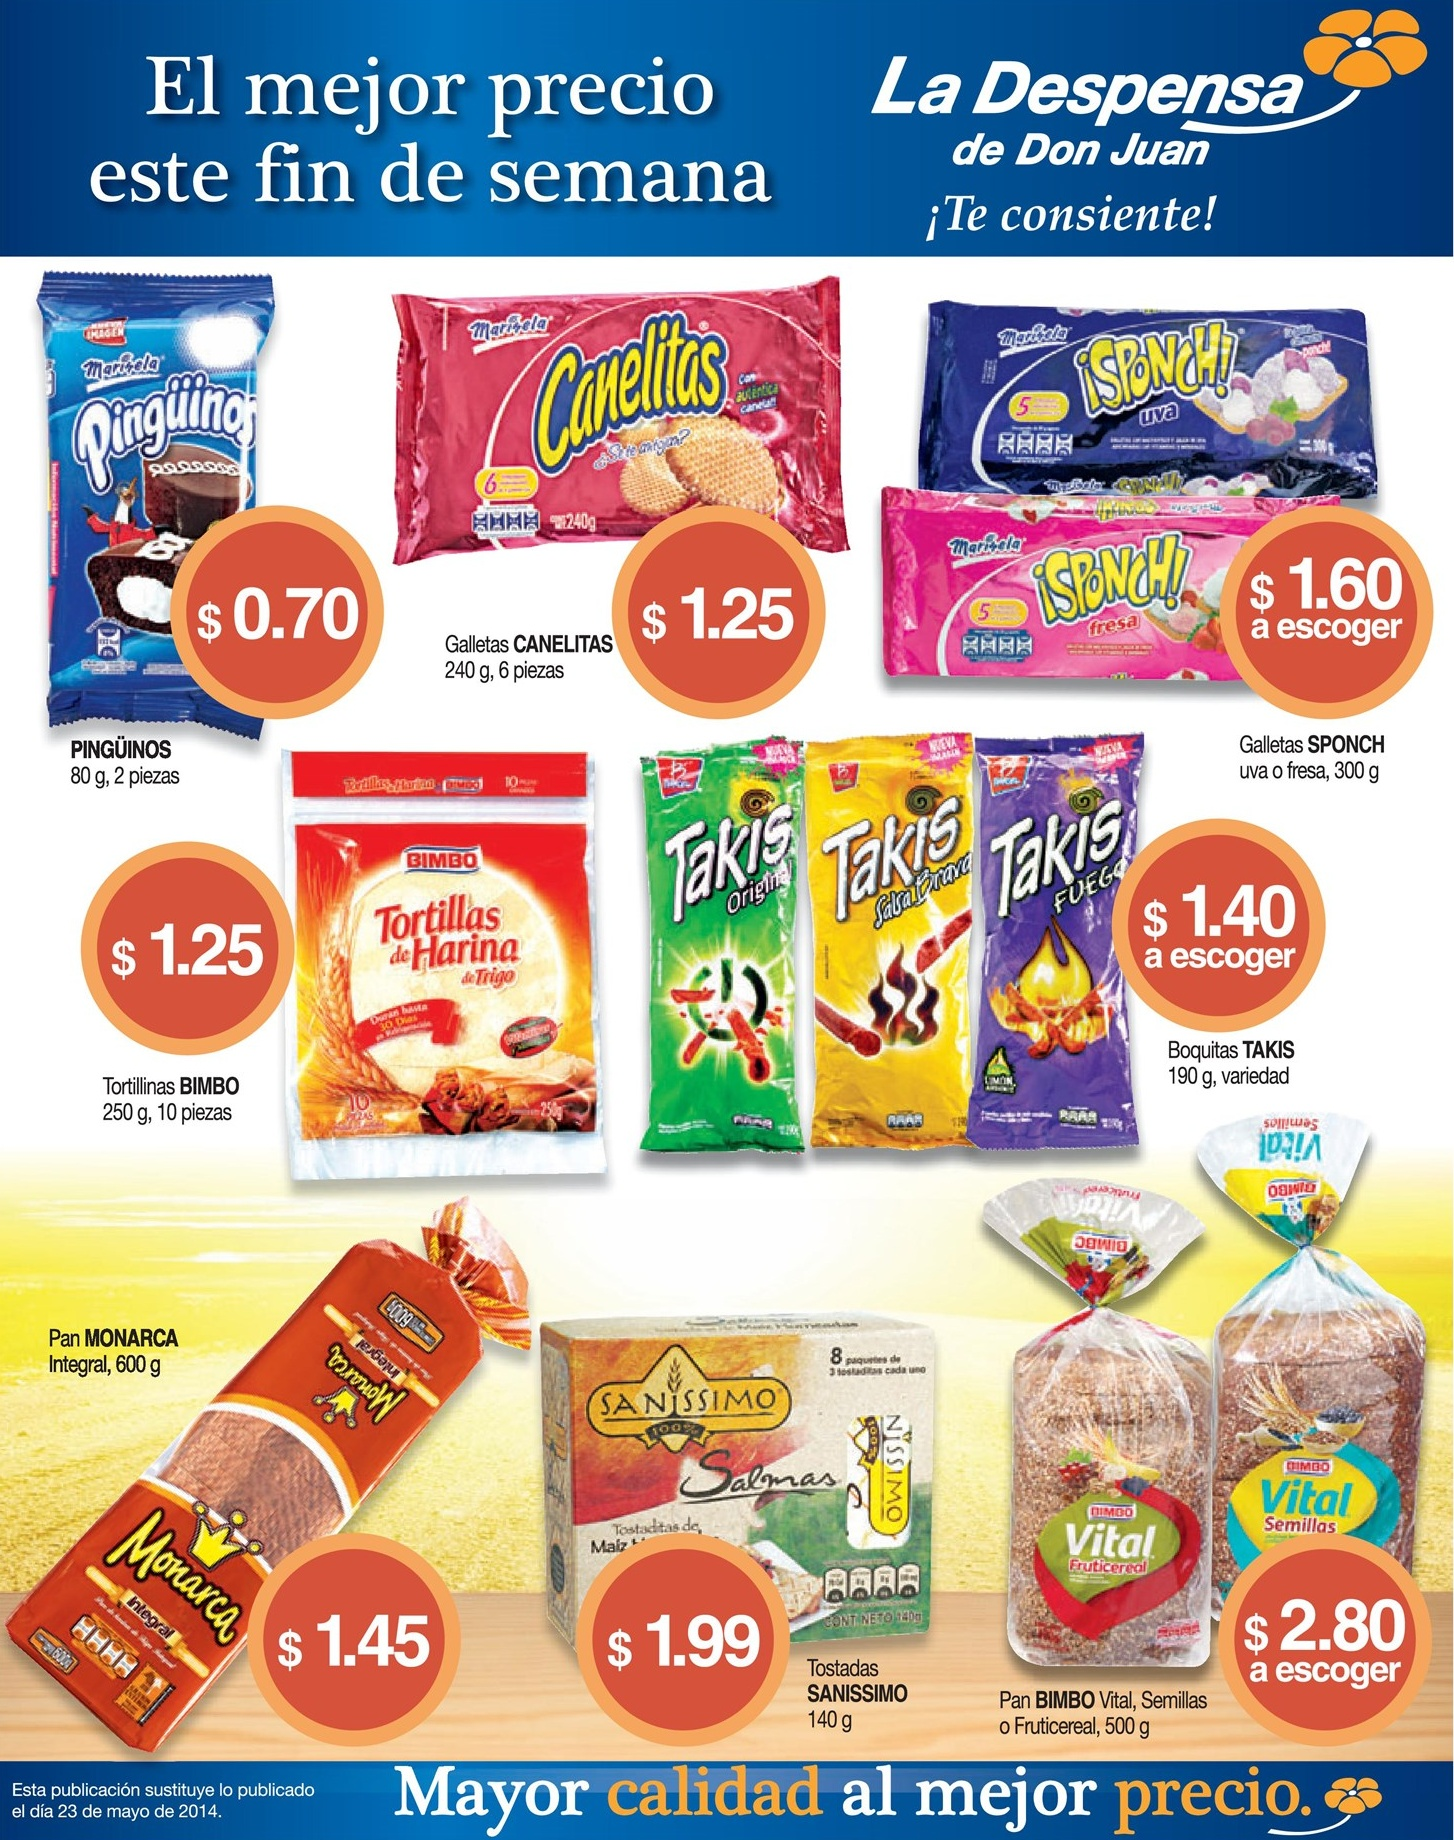 Snacks Cookies Bread Integral LA DESPENSA DE DON JUAN ofertas - 30may14